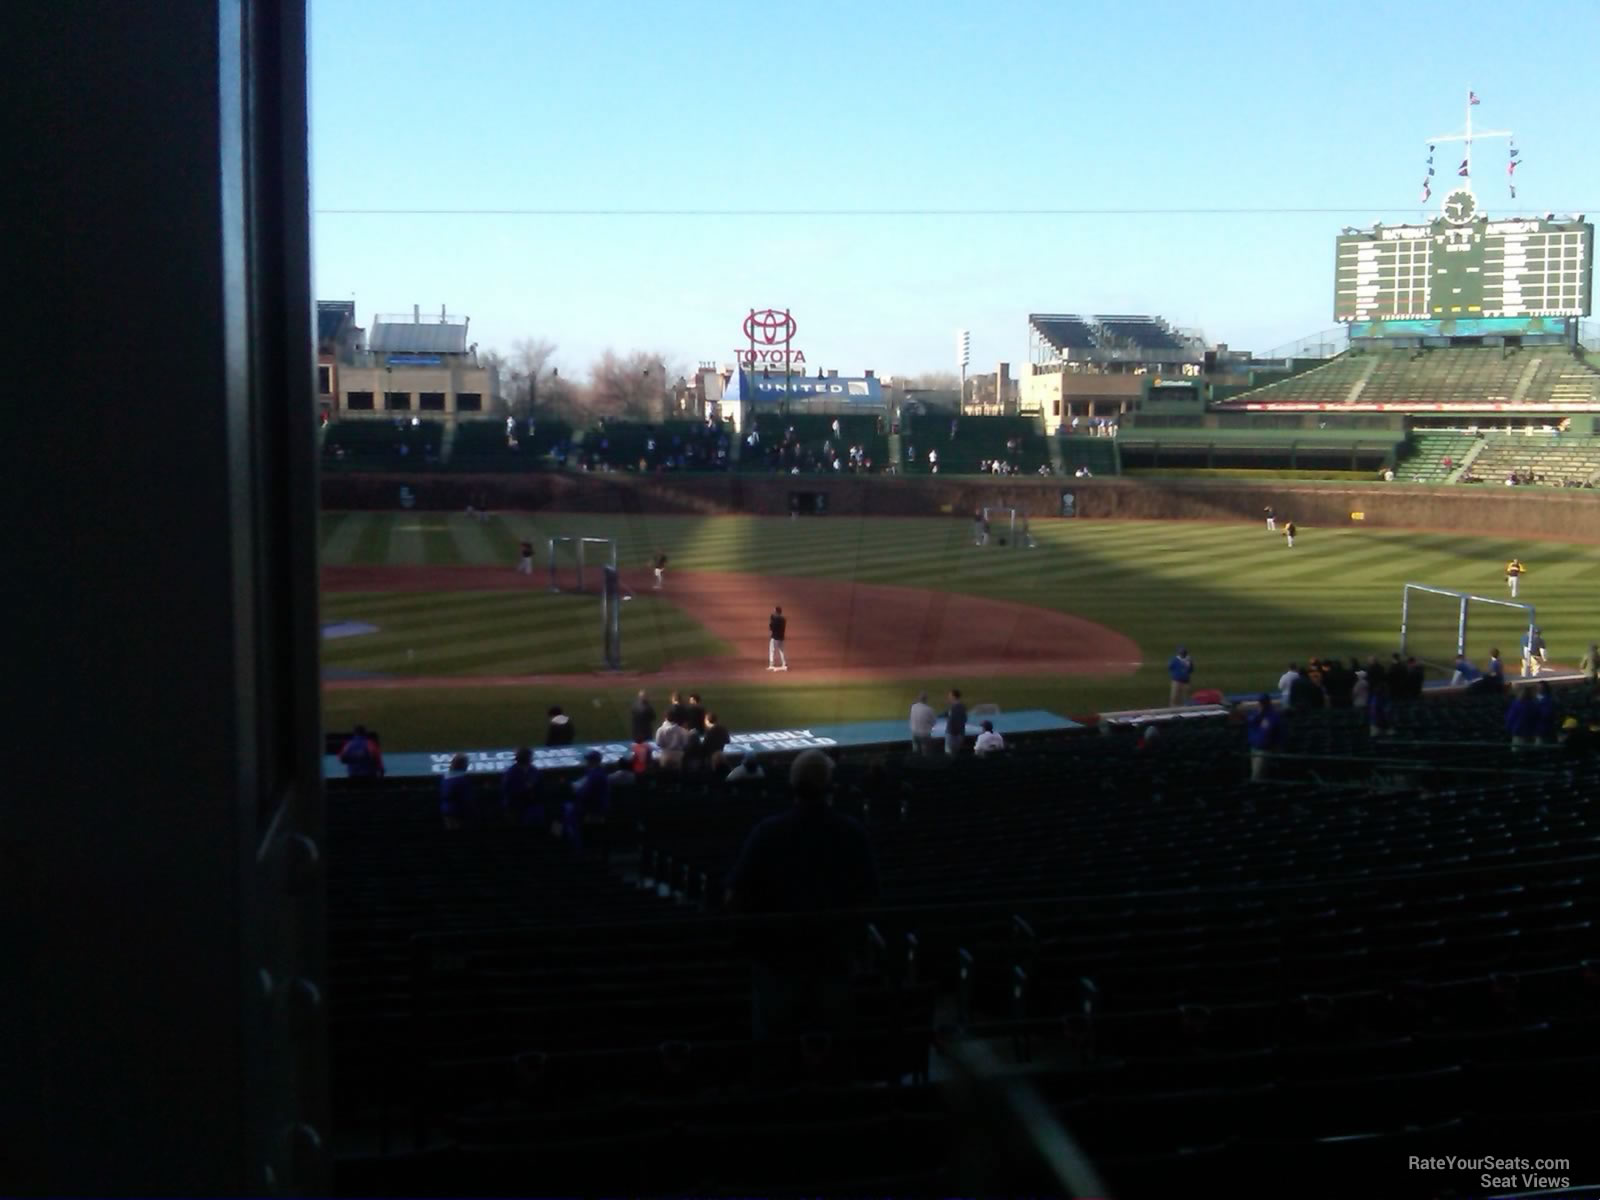 Wrigley Field Section 228 - Chicago Cubs - RateYourSeats.com